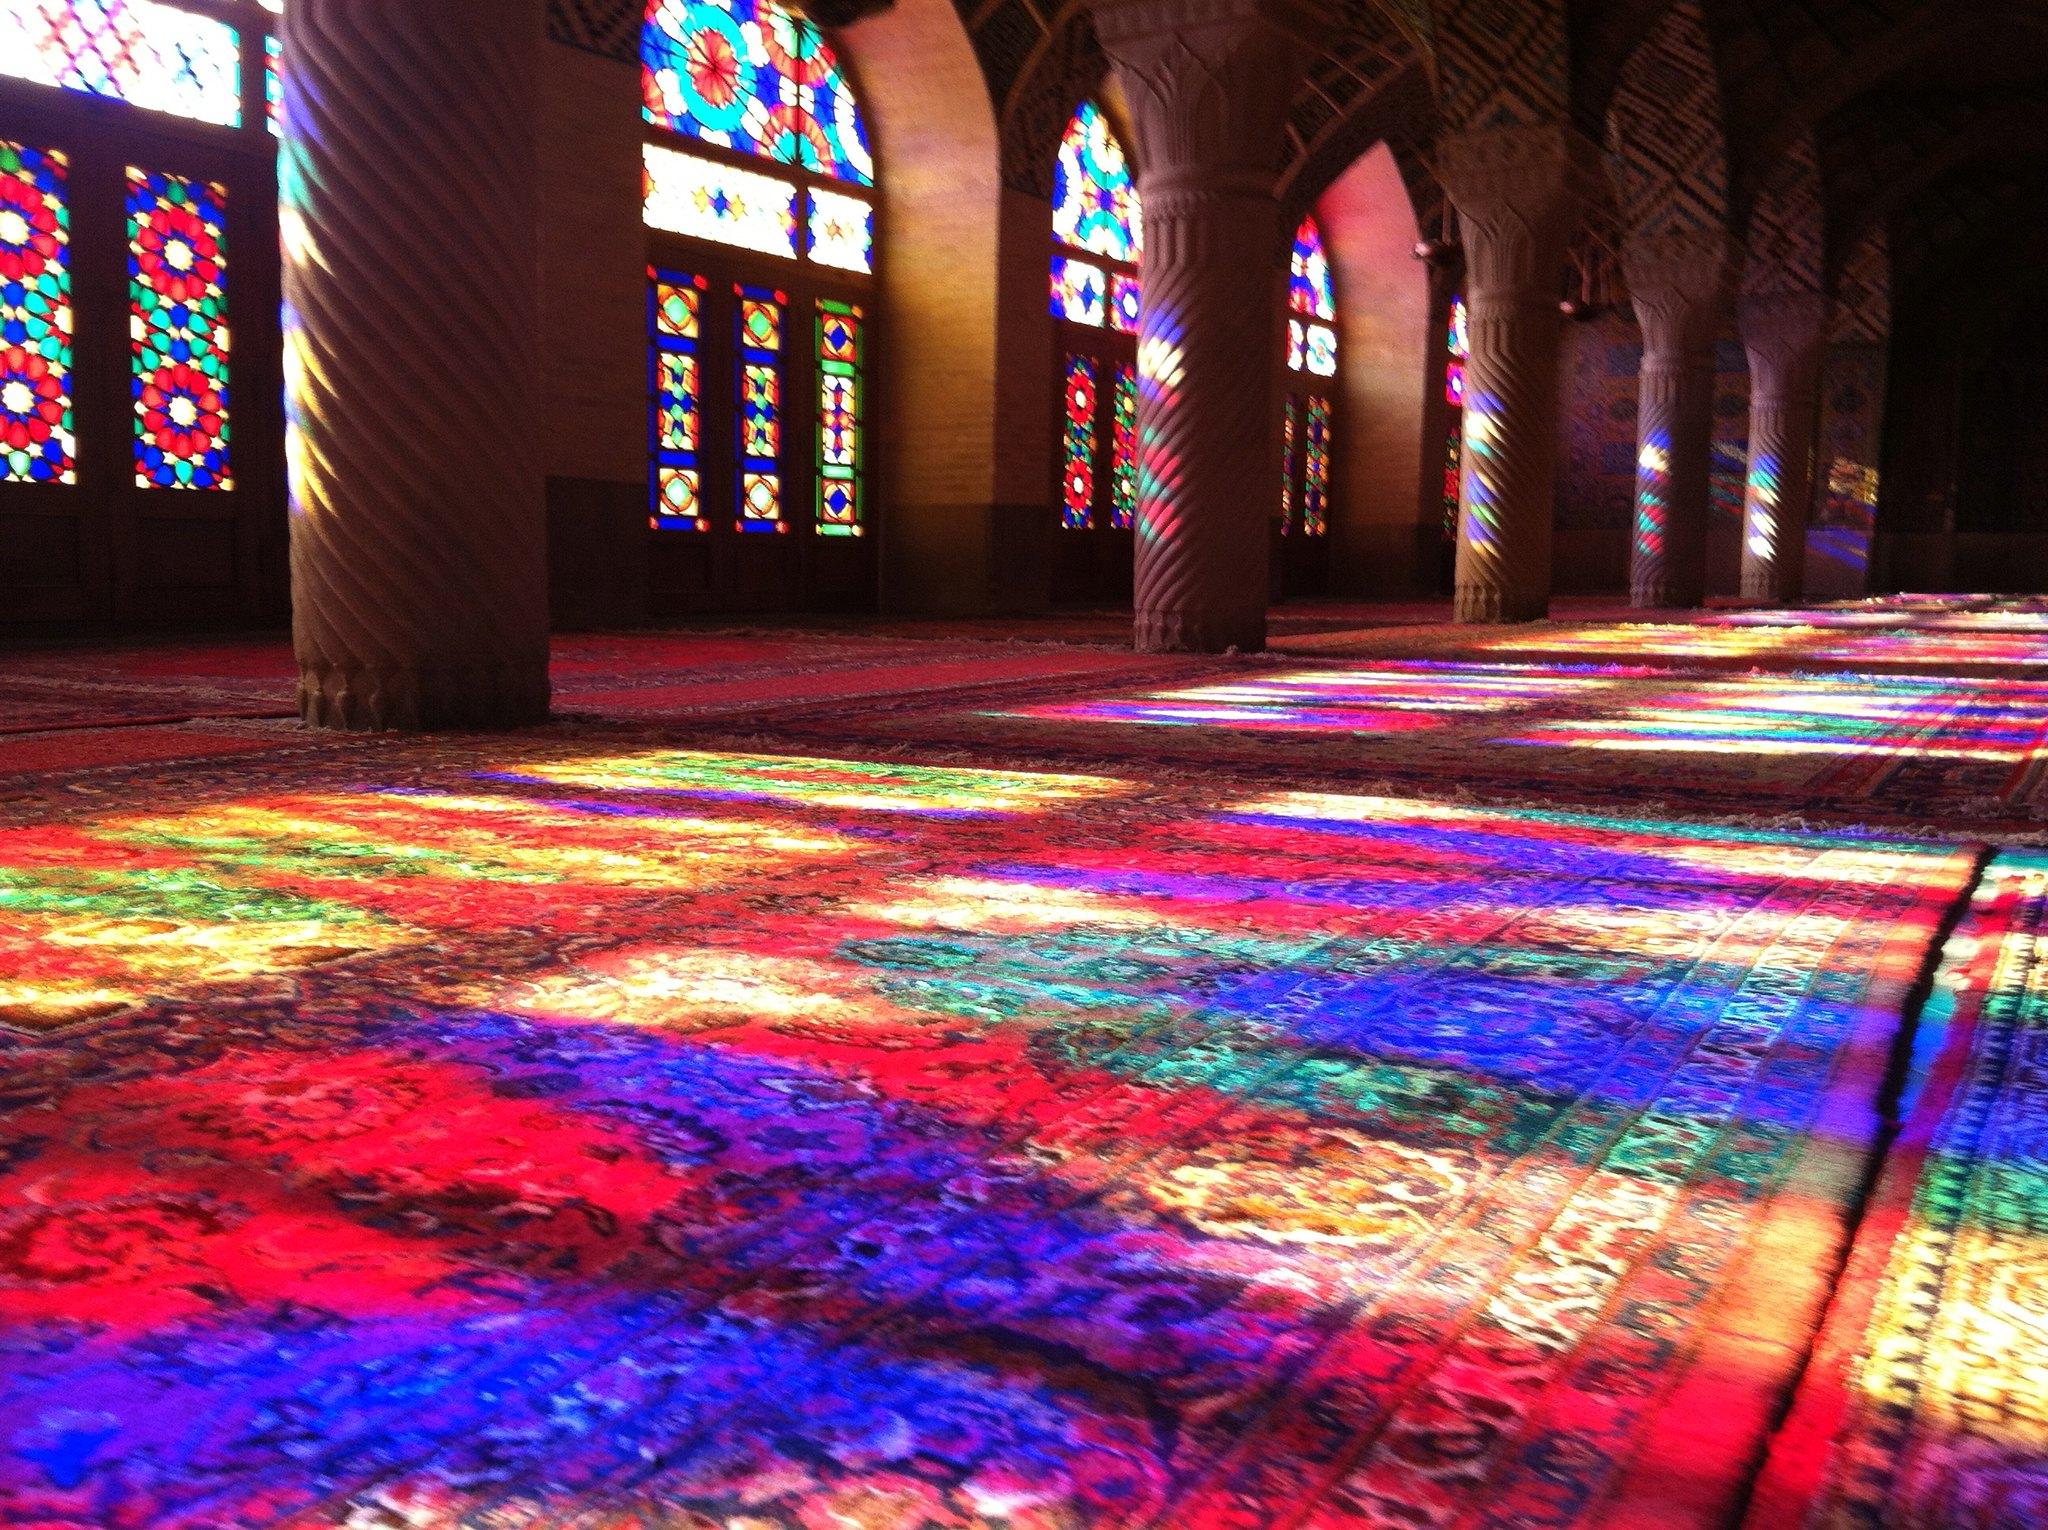 Nasir Al-Mulk (The Pink) Mosque, Shiraz, Iran